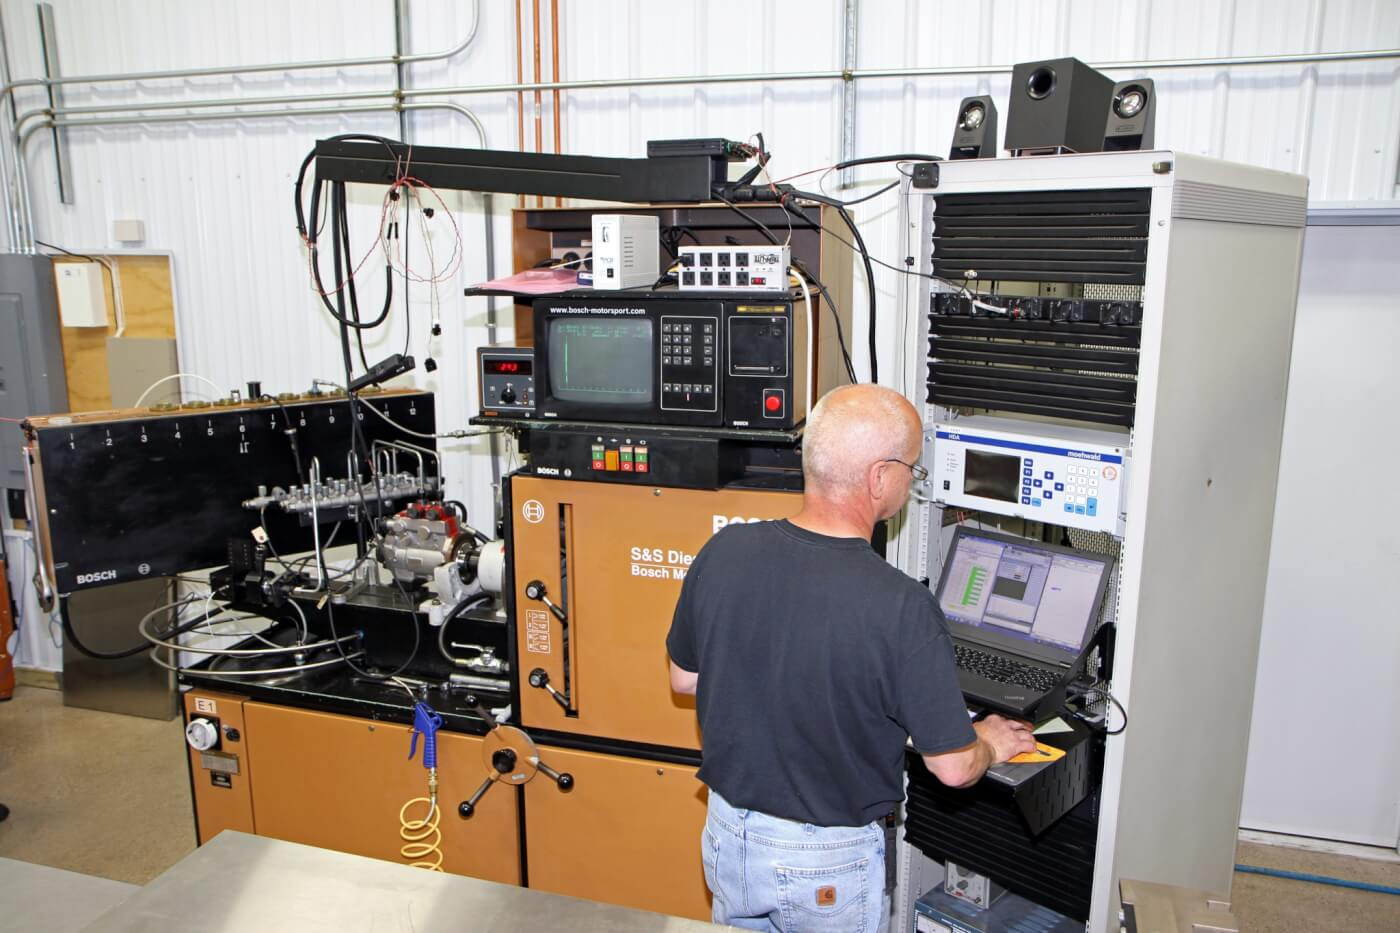 13. The S&S team has a large test machine to measure and verify injector flow and solenoid operation. Each injector within a set is matched to flow within ±0.5% which is a tighter tolerance than OEM standards.